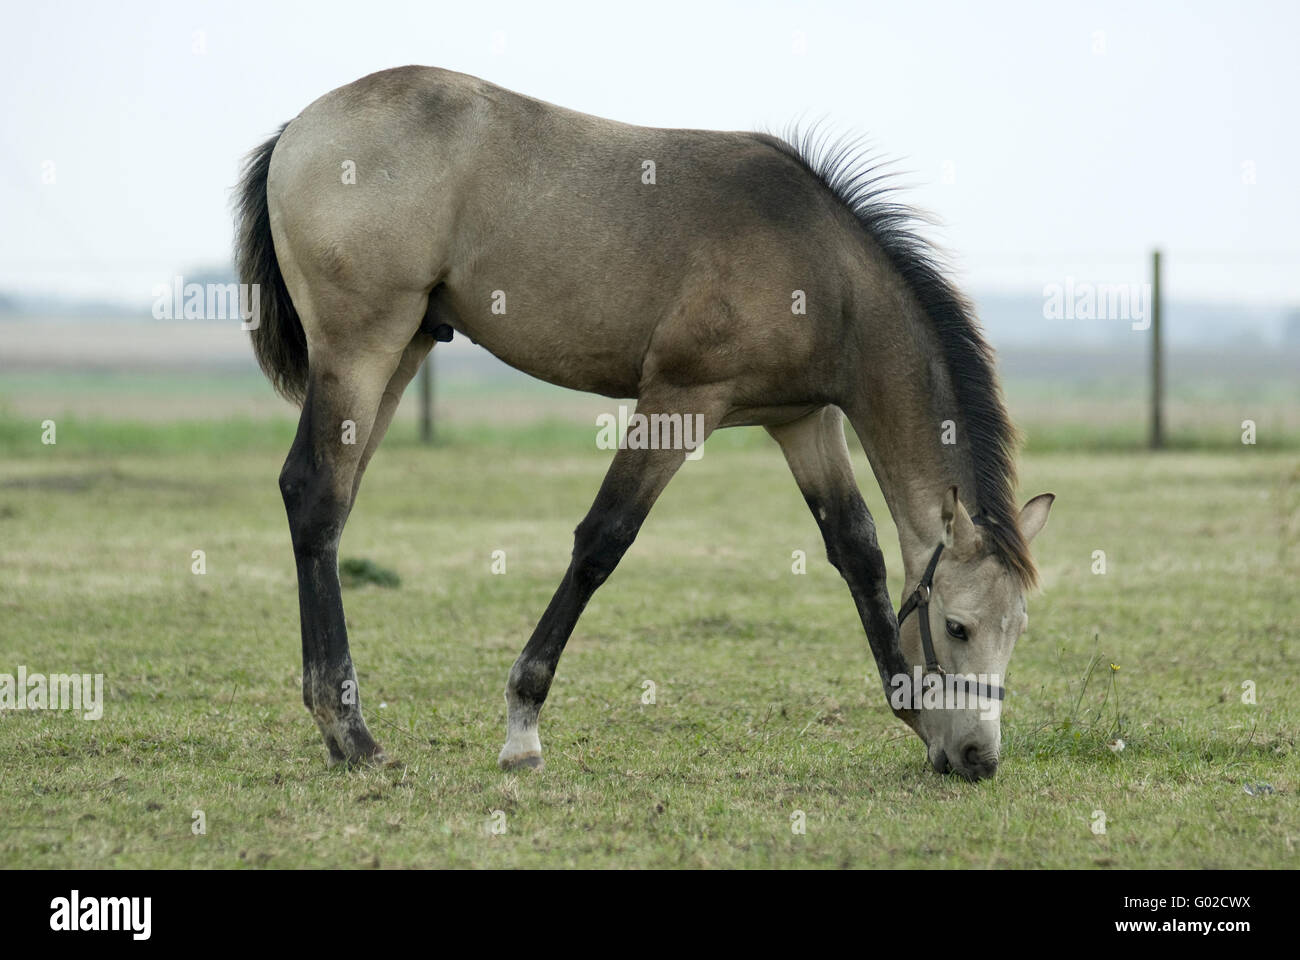 Quarter Horse Mix Stockfotos & Quarter Horse Mix Bilder - Alamy